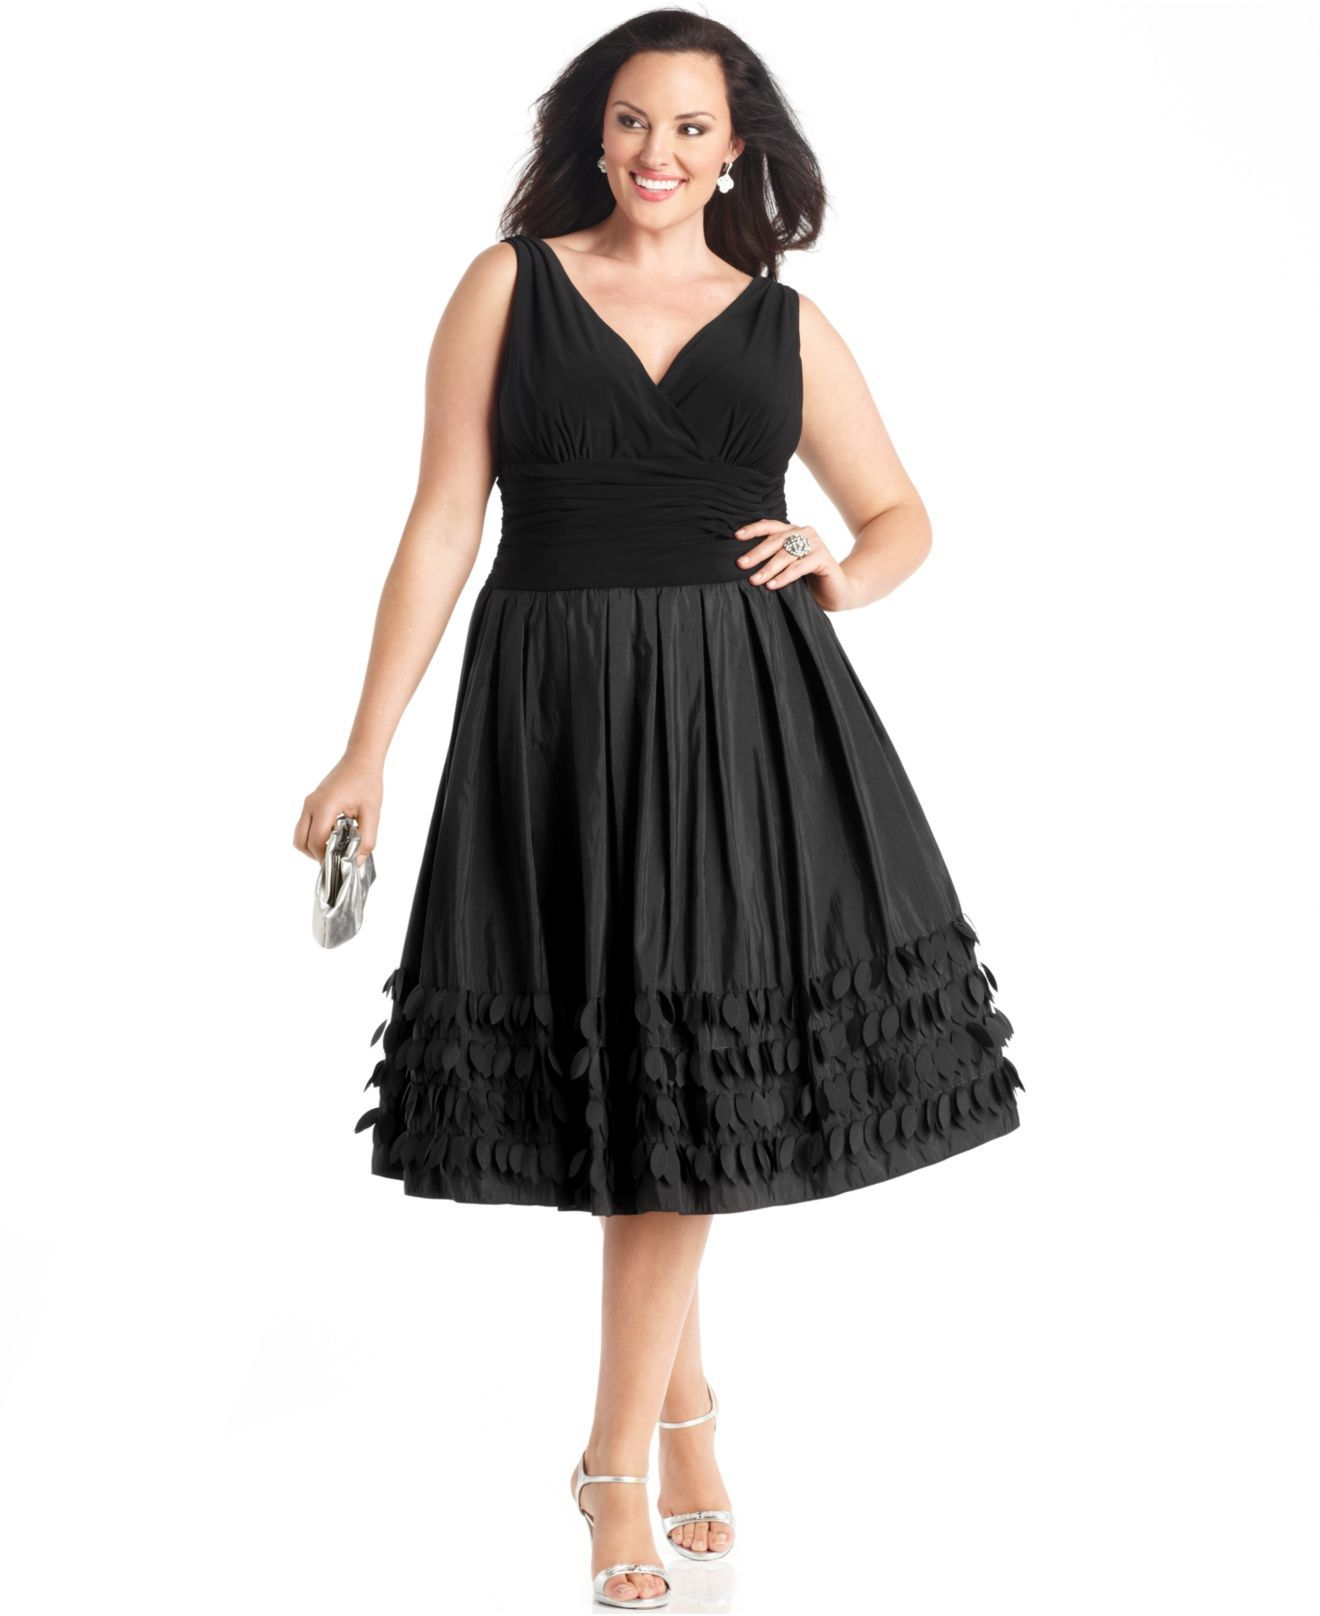 nice detailing at the hem. sl fashions plus size dress, sleeveless